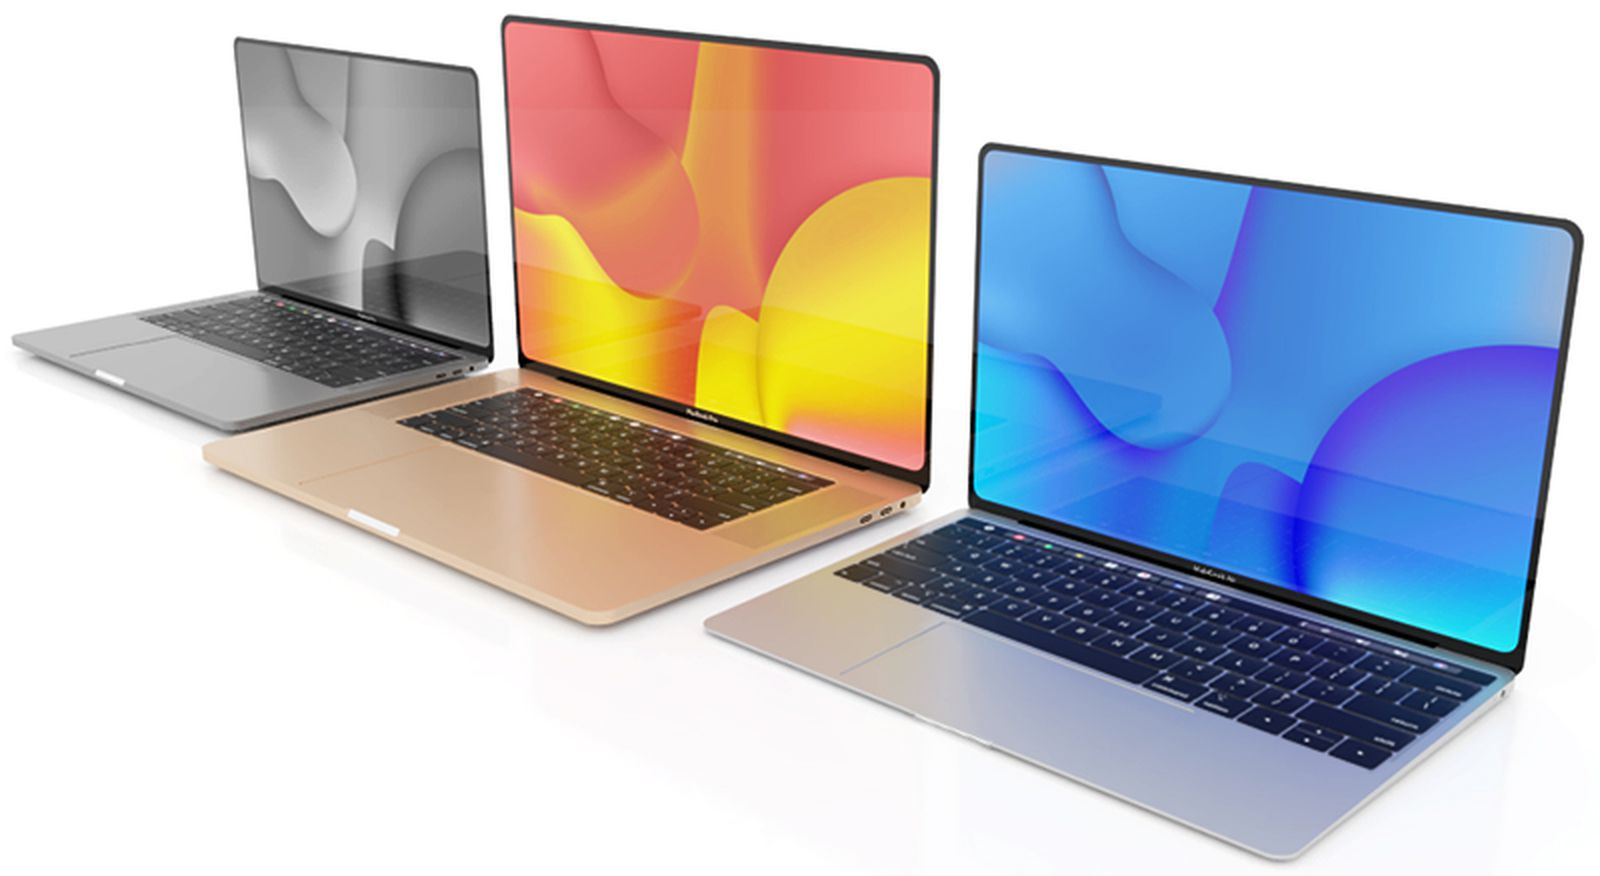 Reliable Leaker Suggests Redesigned MacBooks in 2021 Will Include Both Apple Silicon and Intel Models – MacRumors